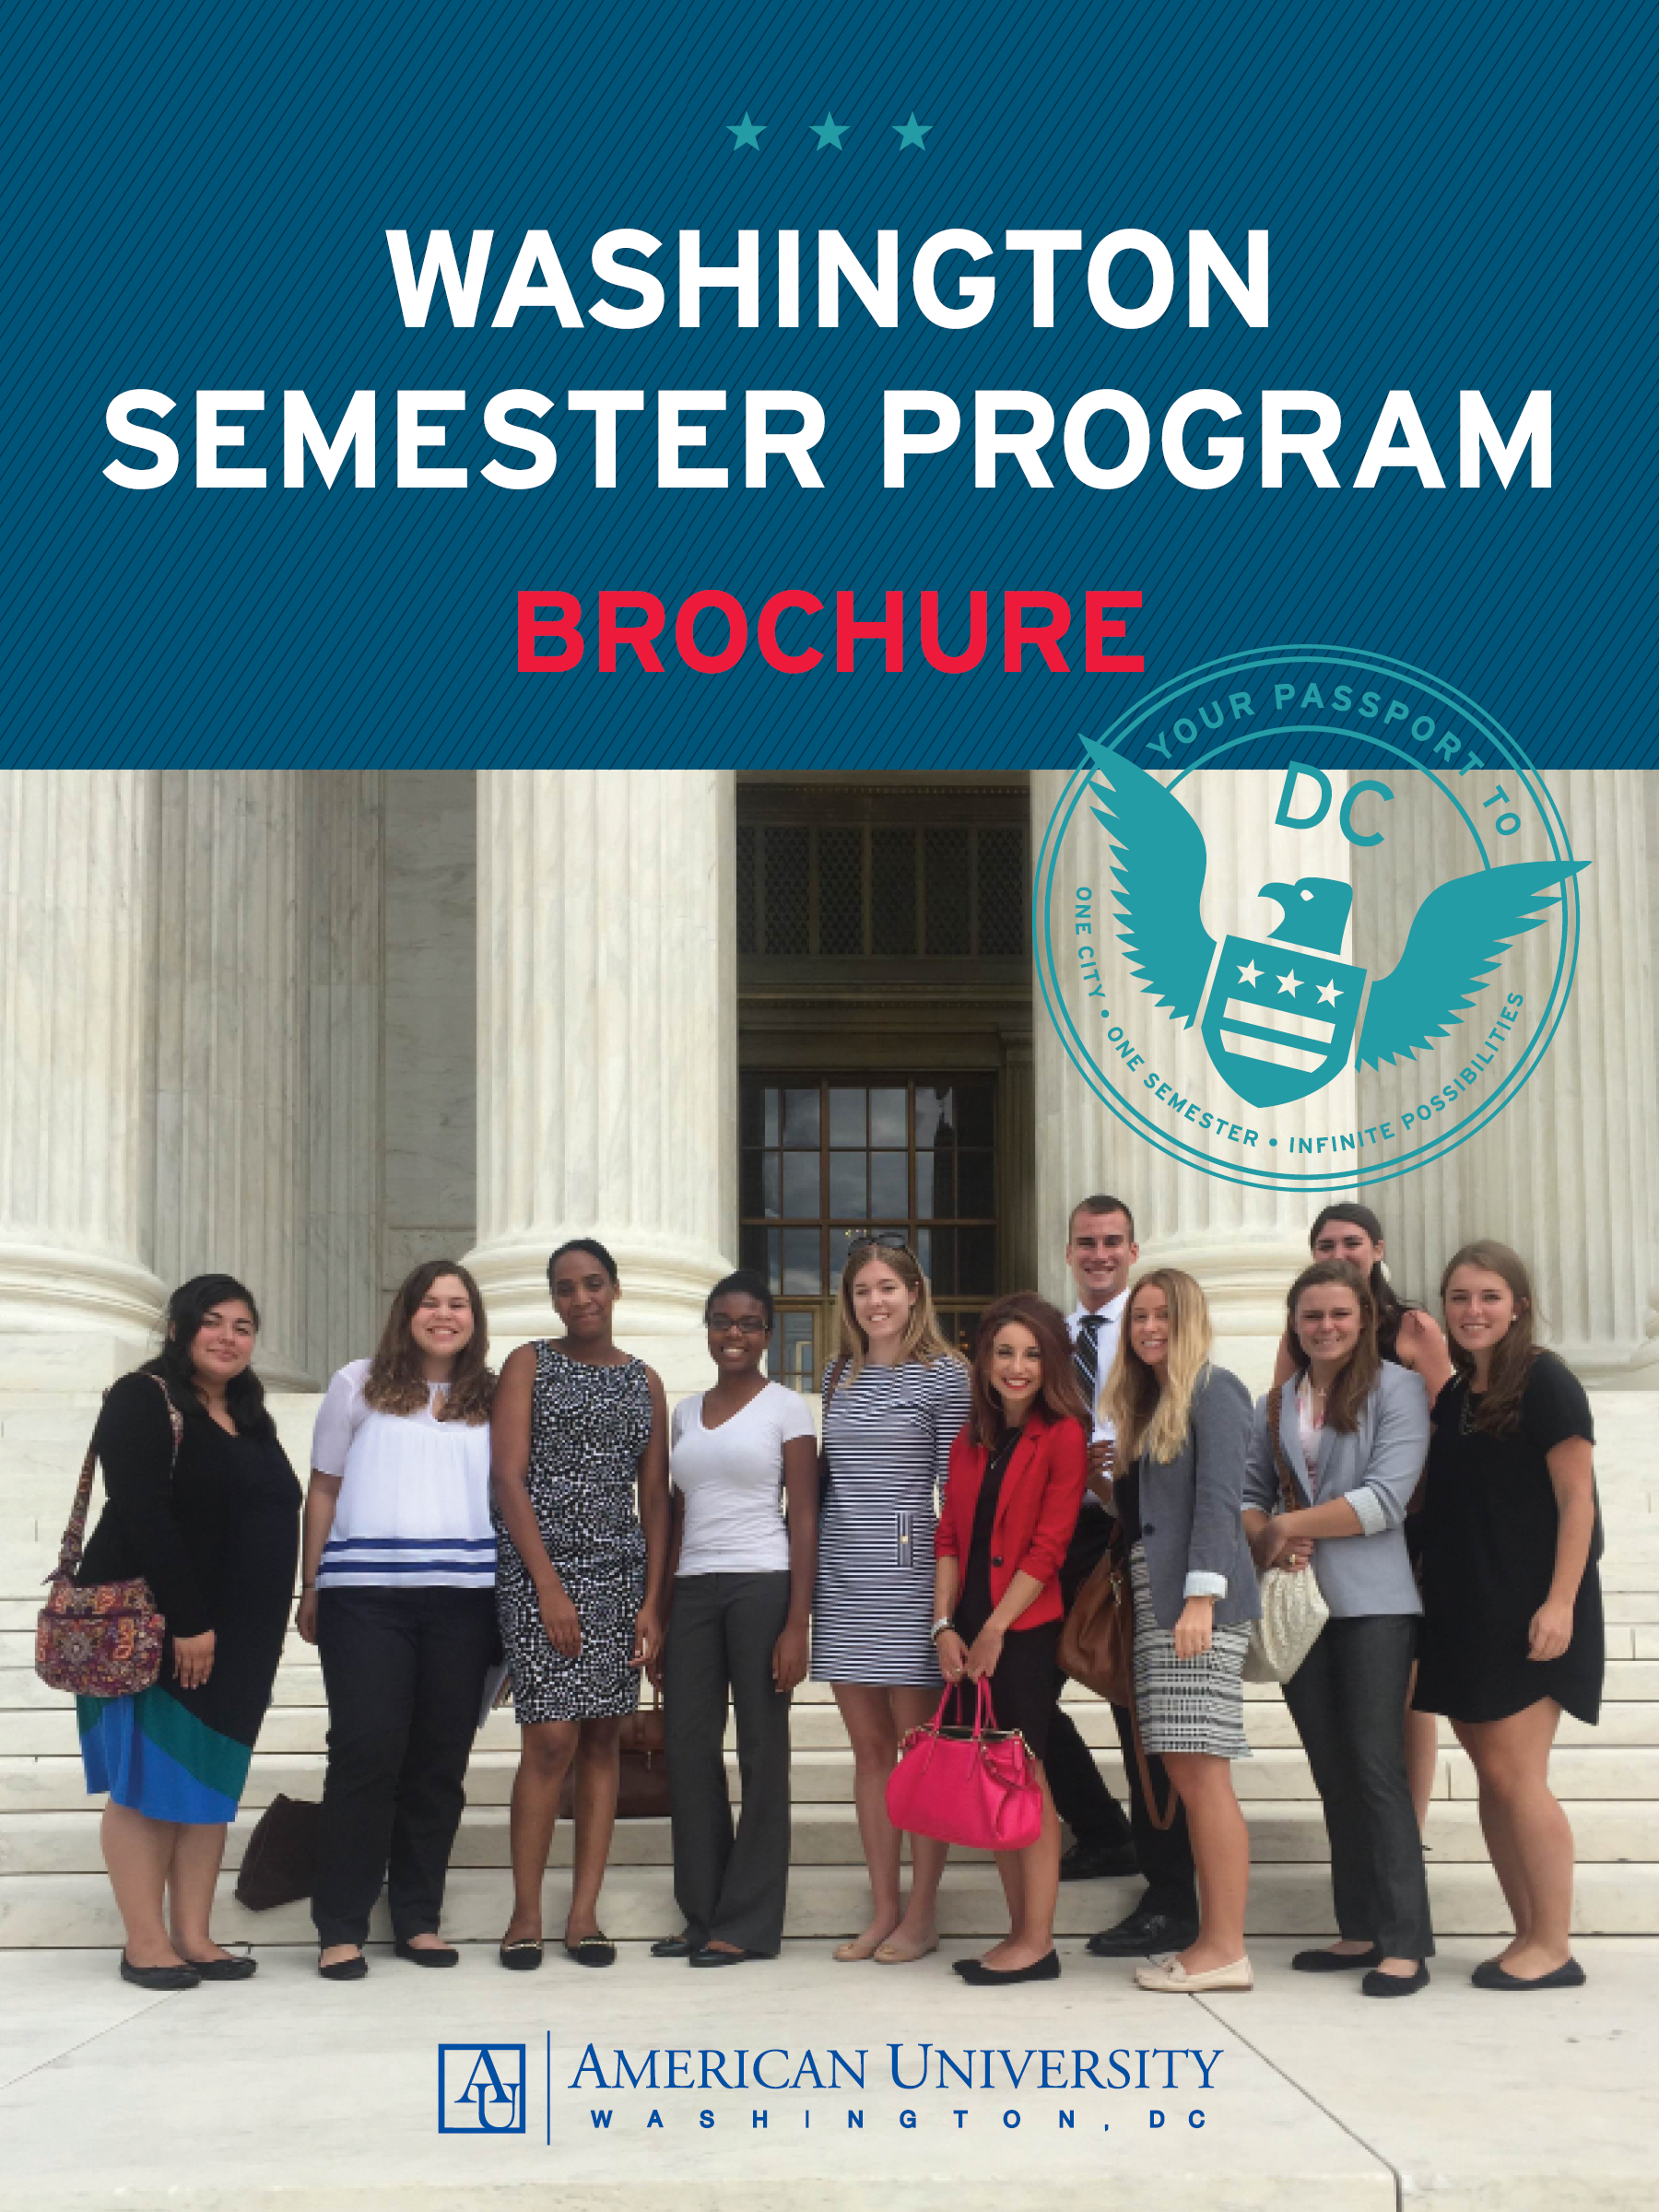 Washington Semester Program Brochure features Students standing on building steps